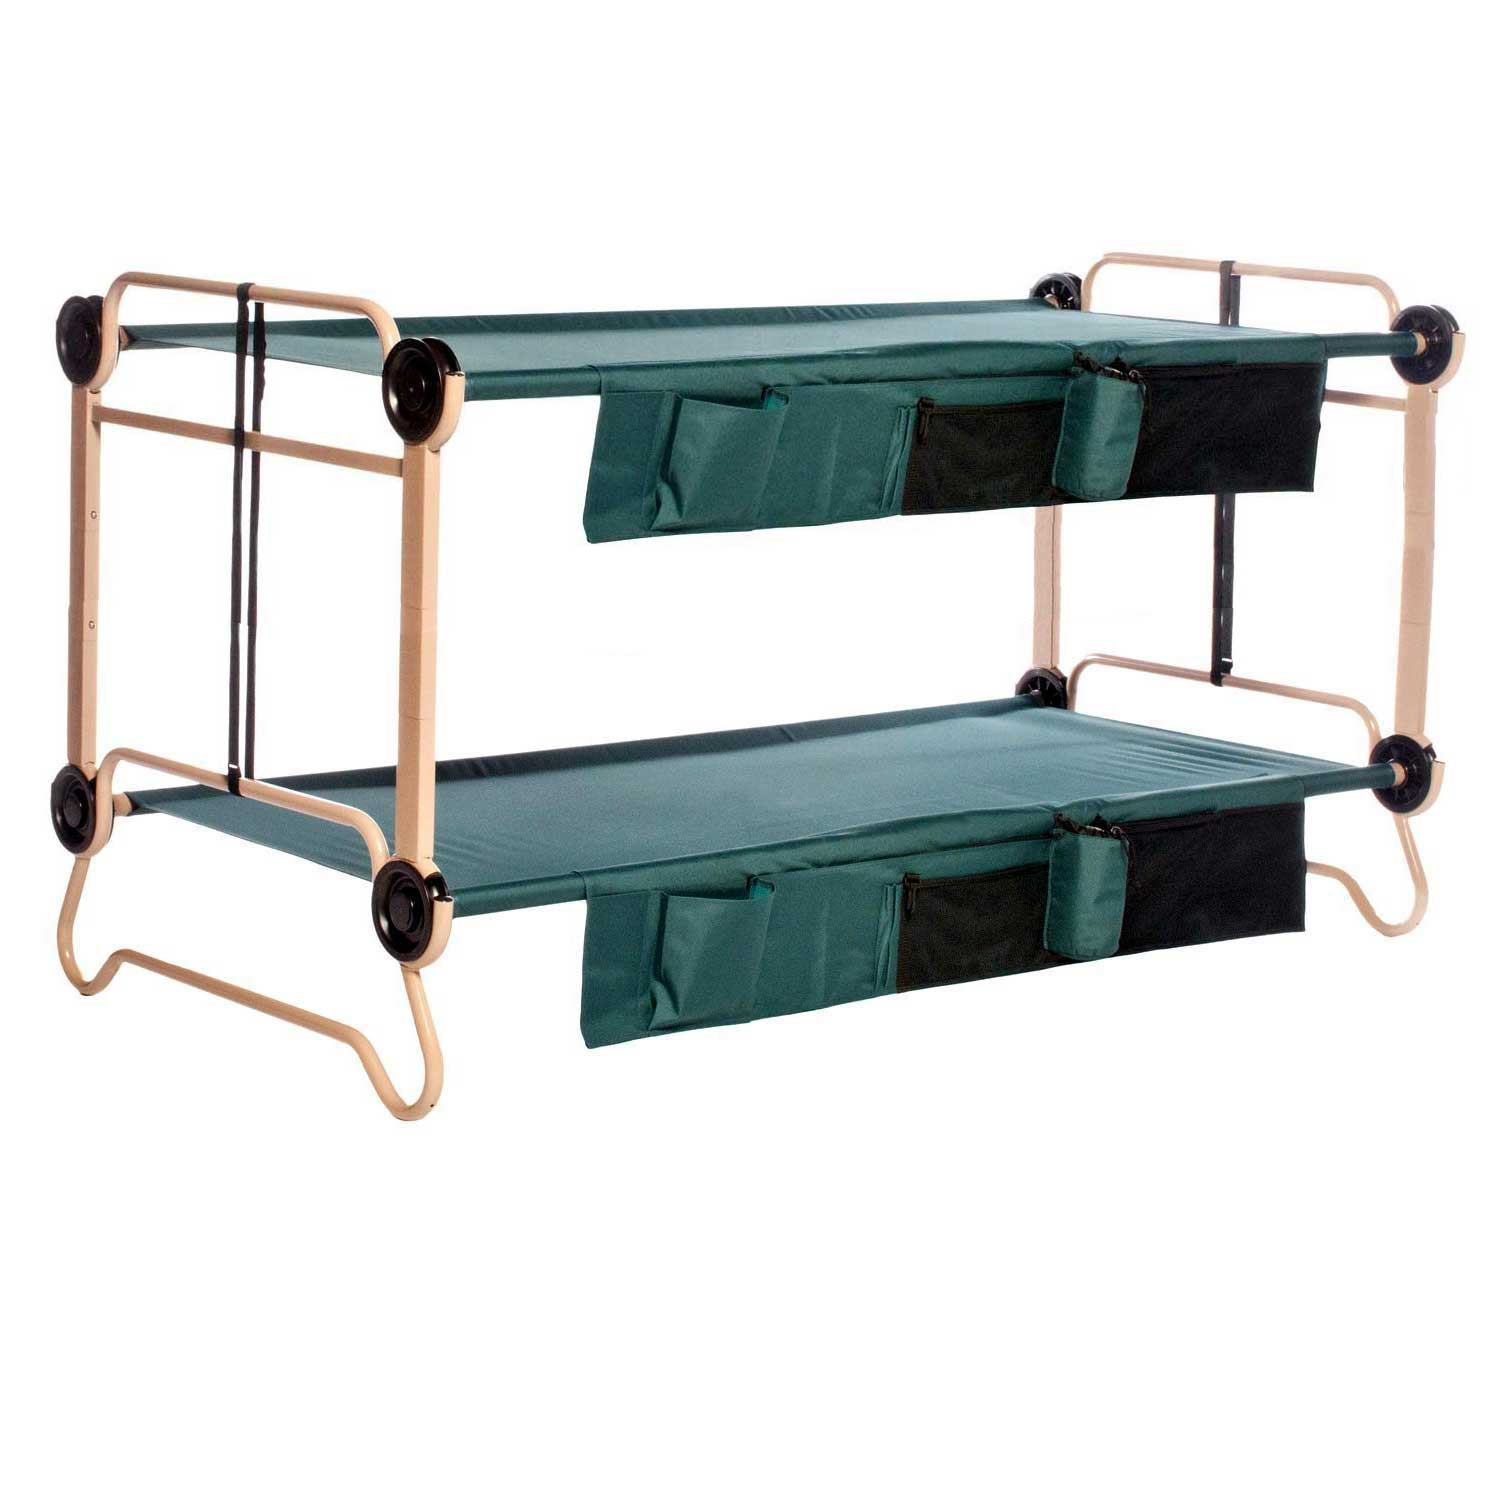 Disc O Bed X Large Cam O Bunk Double Cot With Organizers 7 Inch